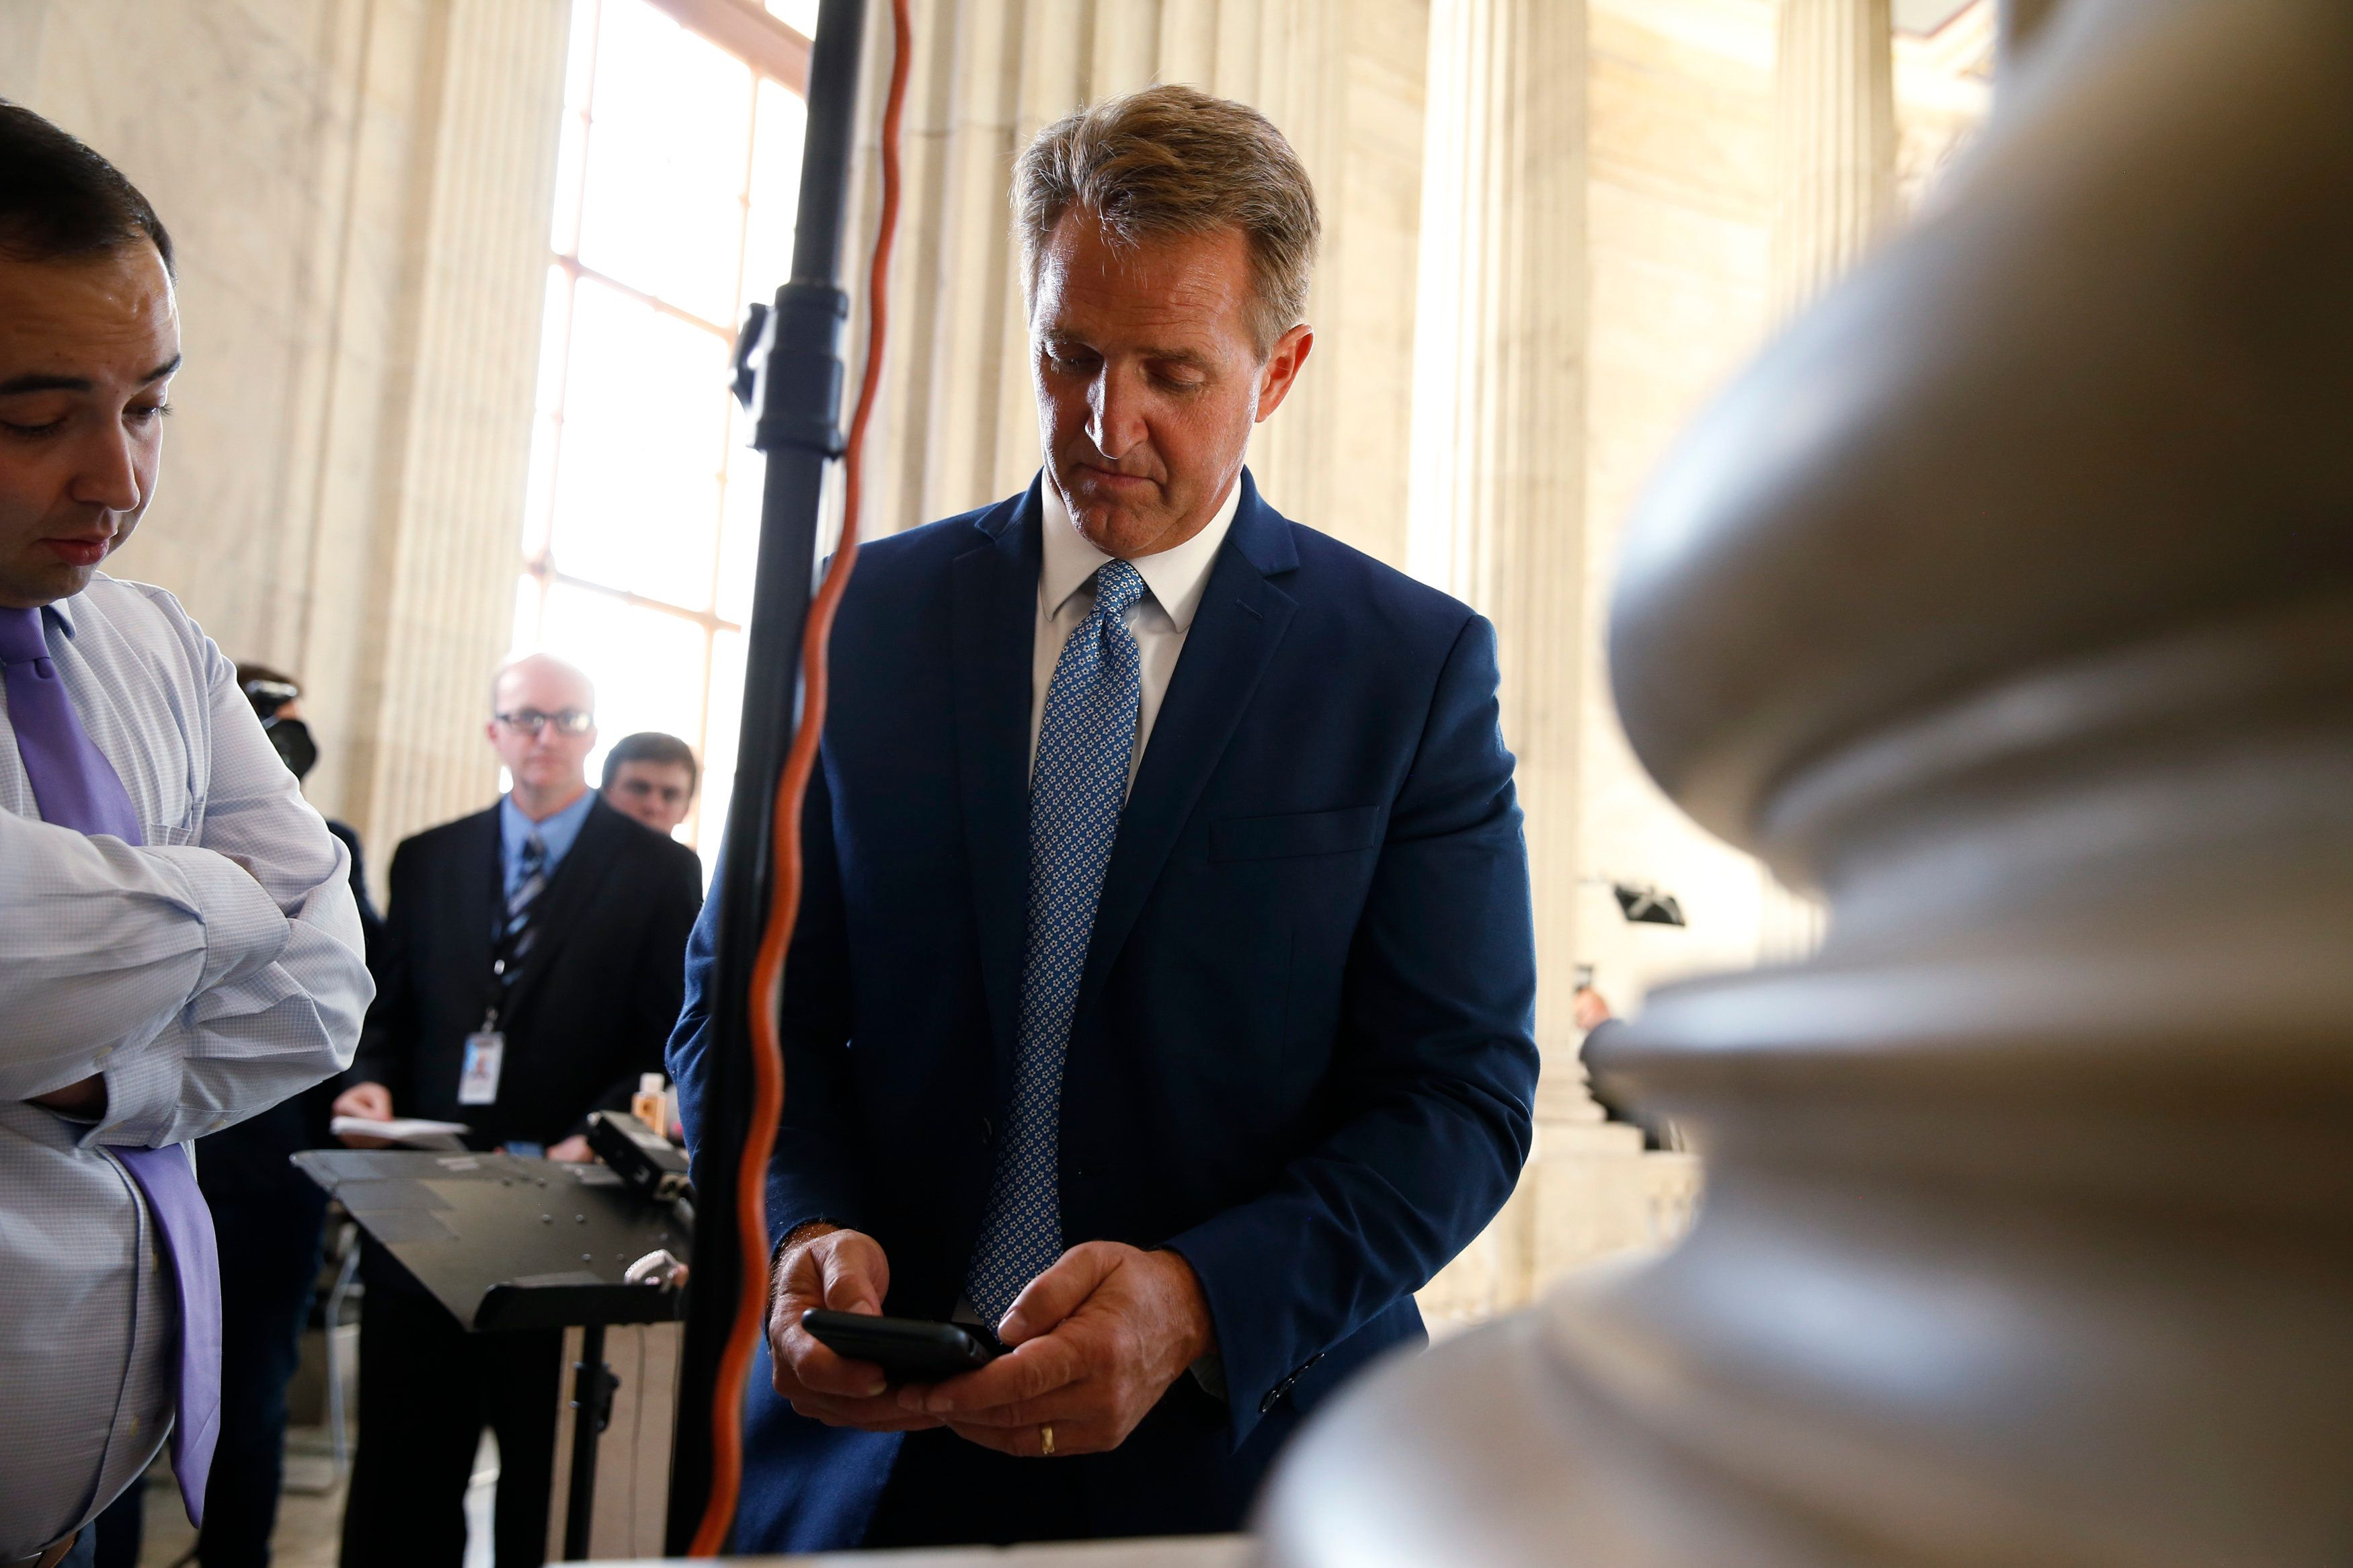 U.S. Senator Jeff Flake (R-AZ) pauses to check his phone after announcing he will not run for reelection on Capitol Hill in Washington, U.S., October 24, 2017. REUTERS/Joshua Roberts